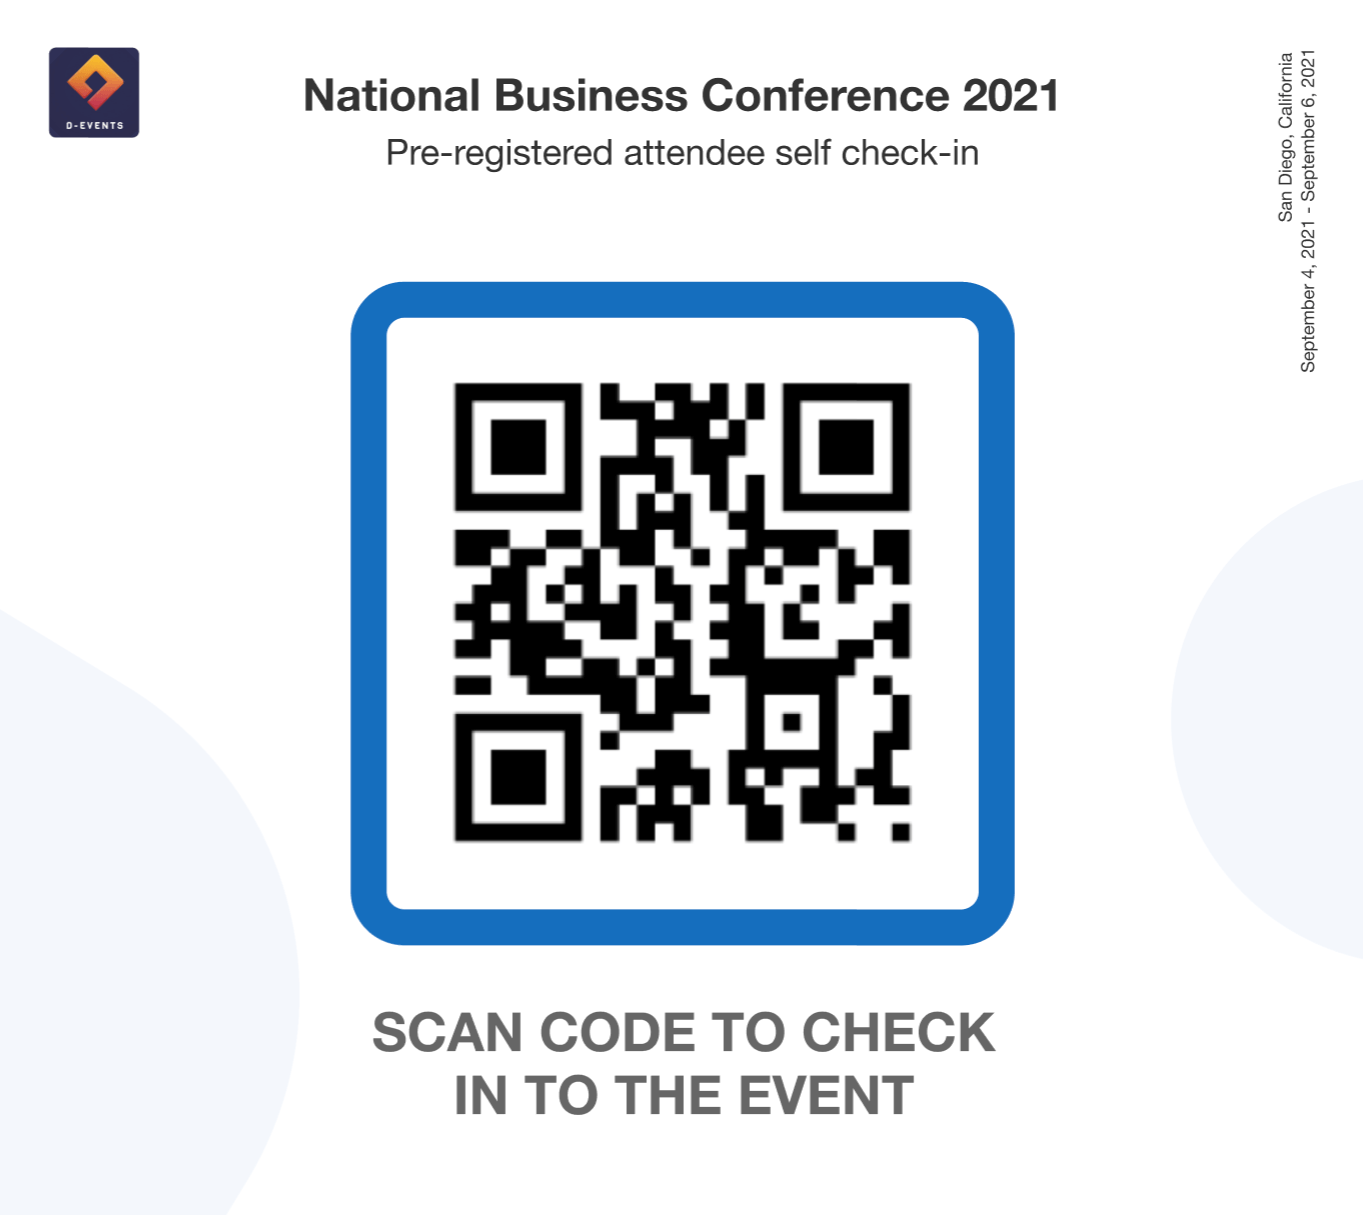 Attendees just have to scan a printable QR code to be taken to a check-in screen on their own devices